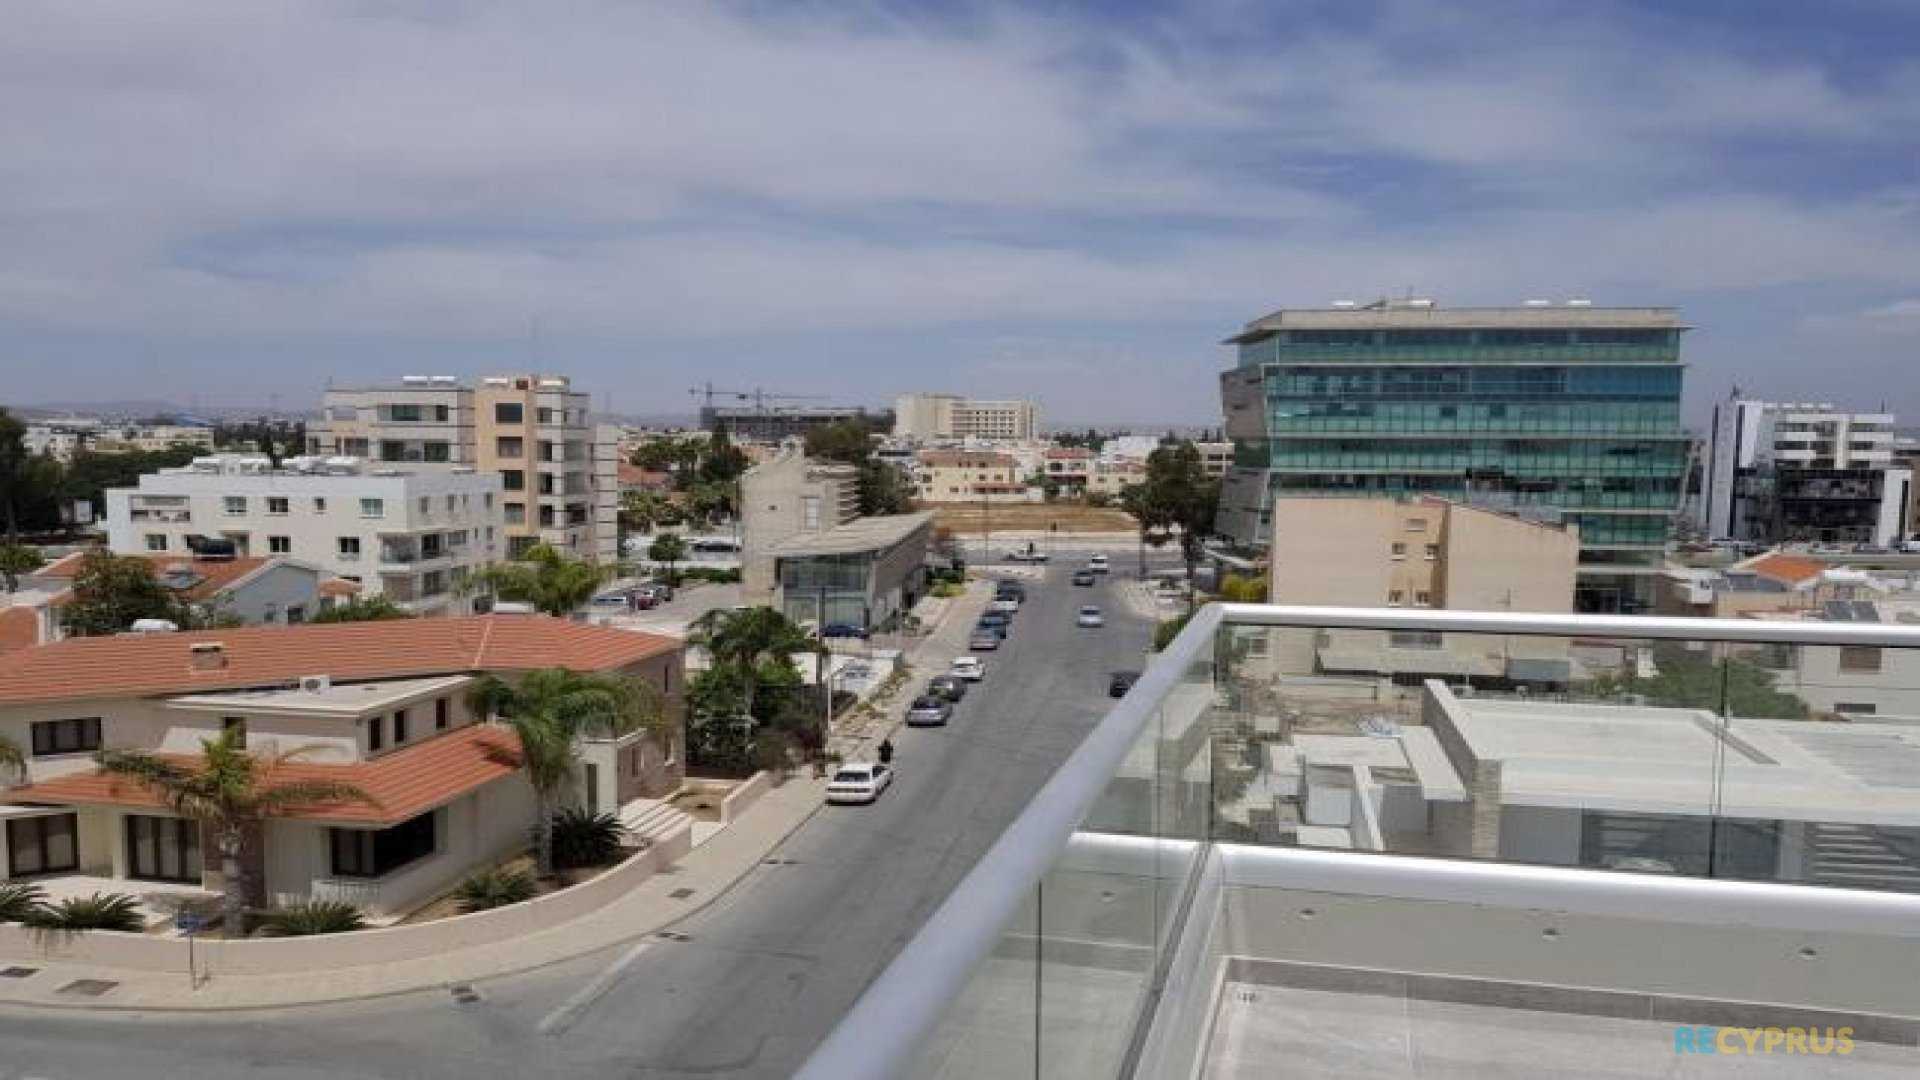 Apartment for sale City Center Larnaca Cyprus 12 3585